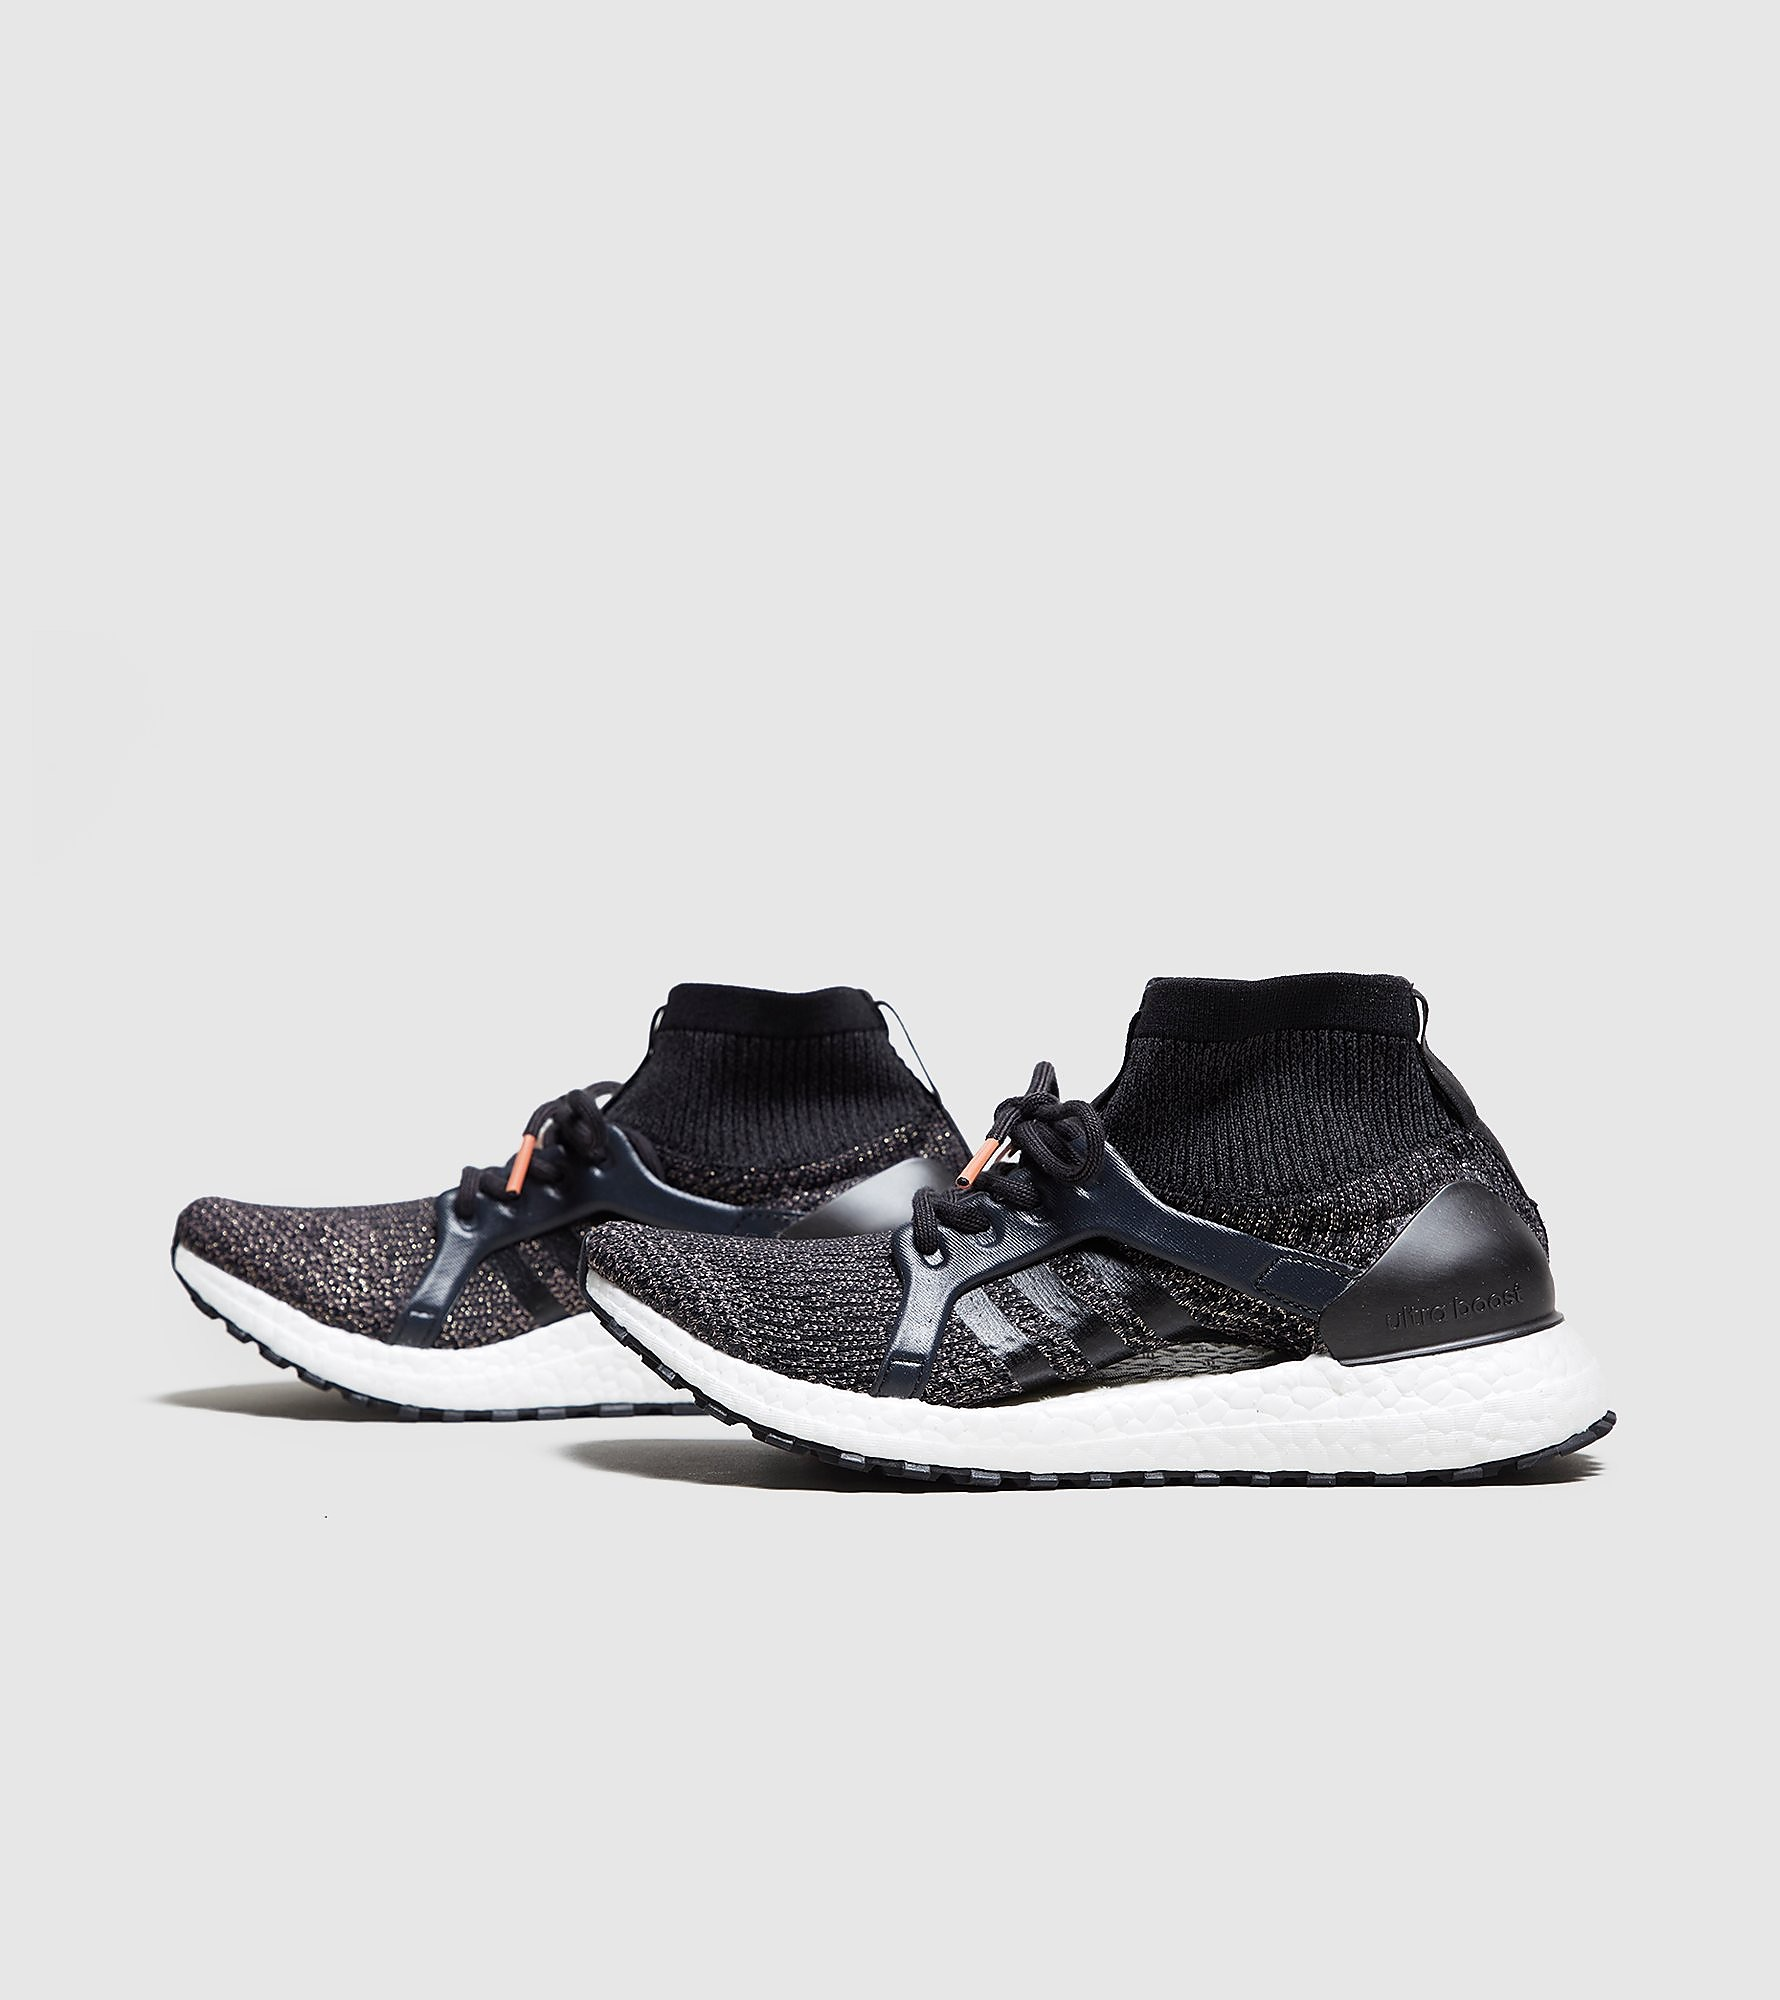 adidas UltraBoost All Terrain Women's